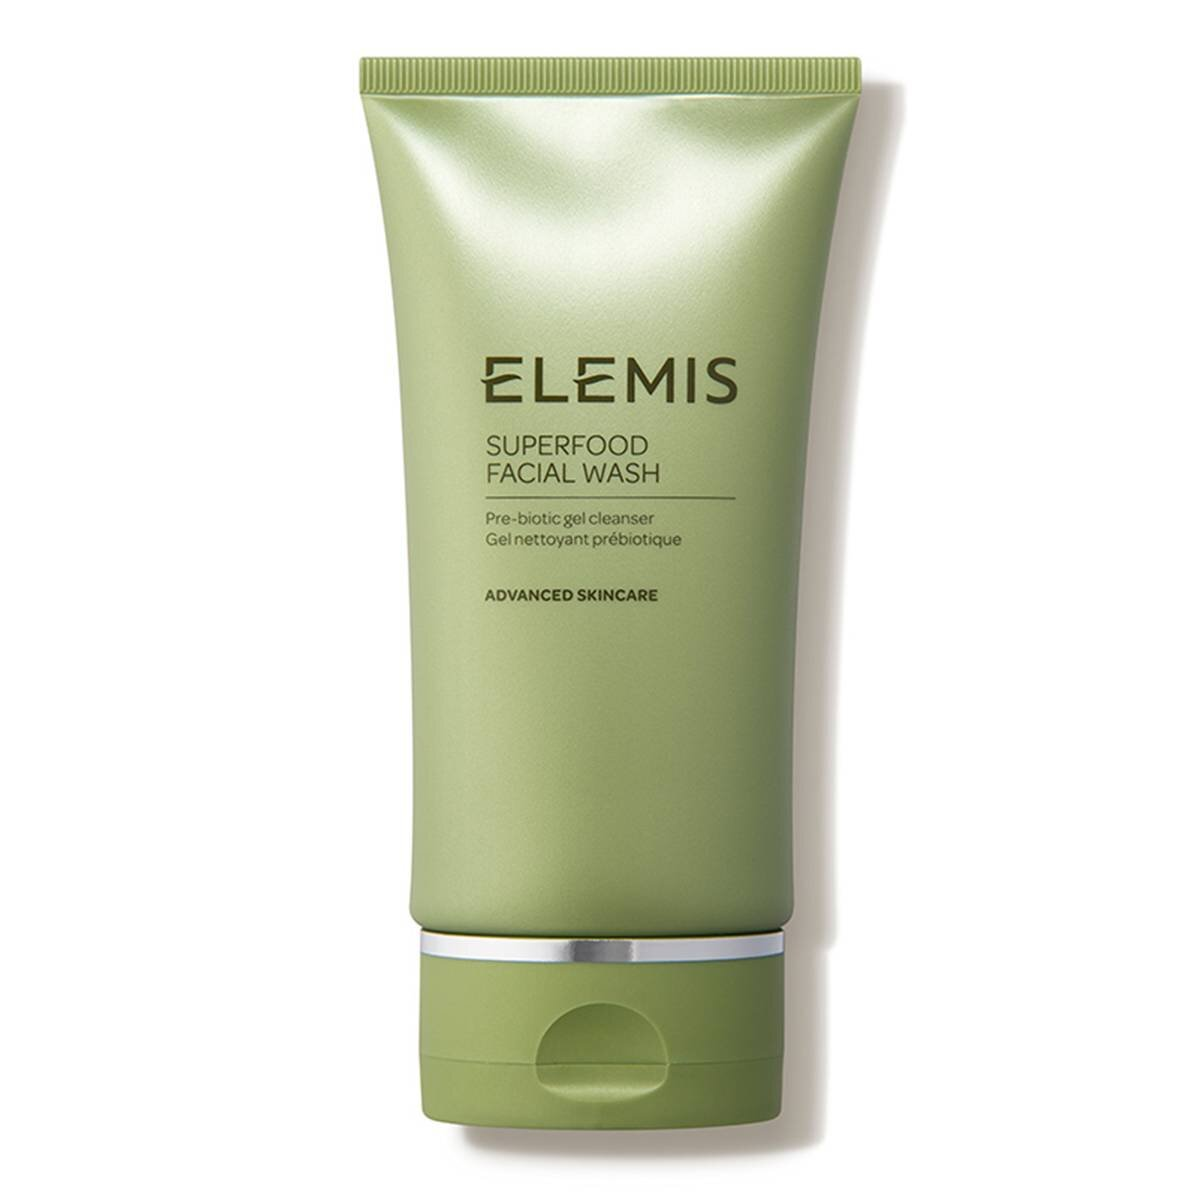 Elemis  Superfood Facial Wash ($25)